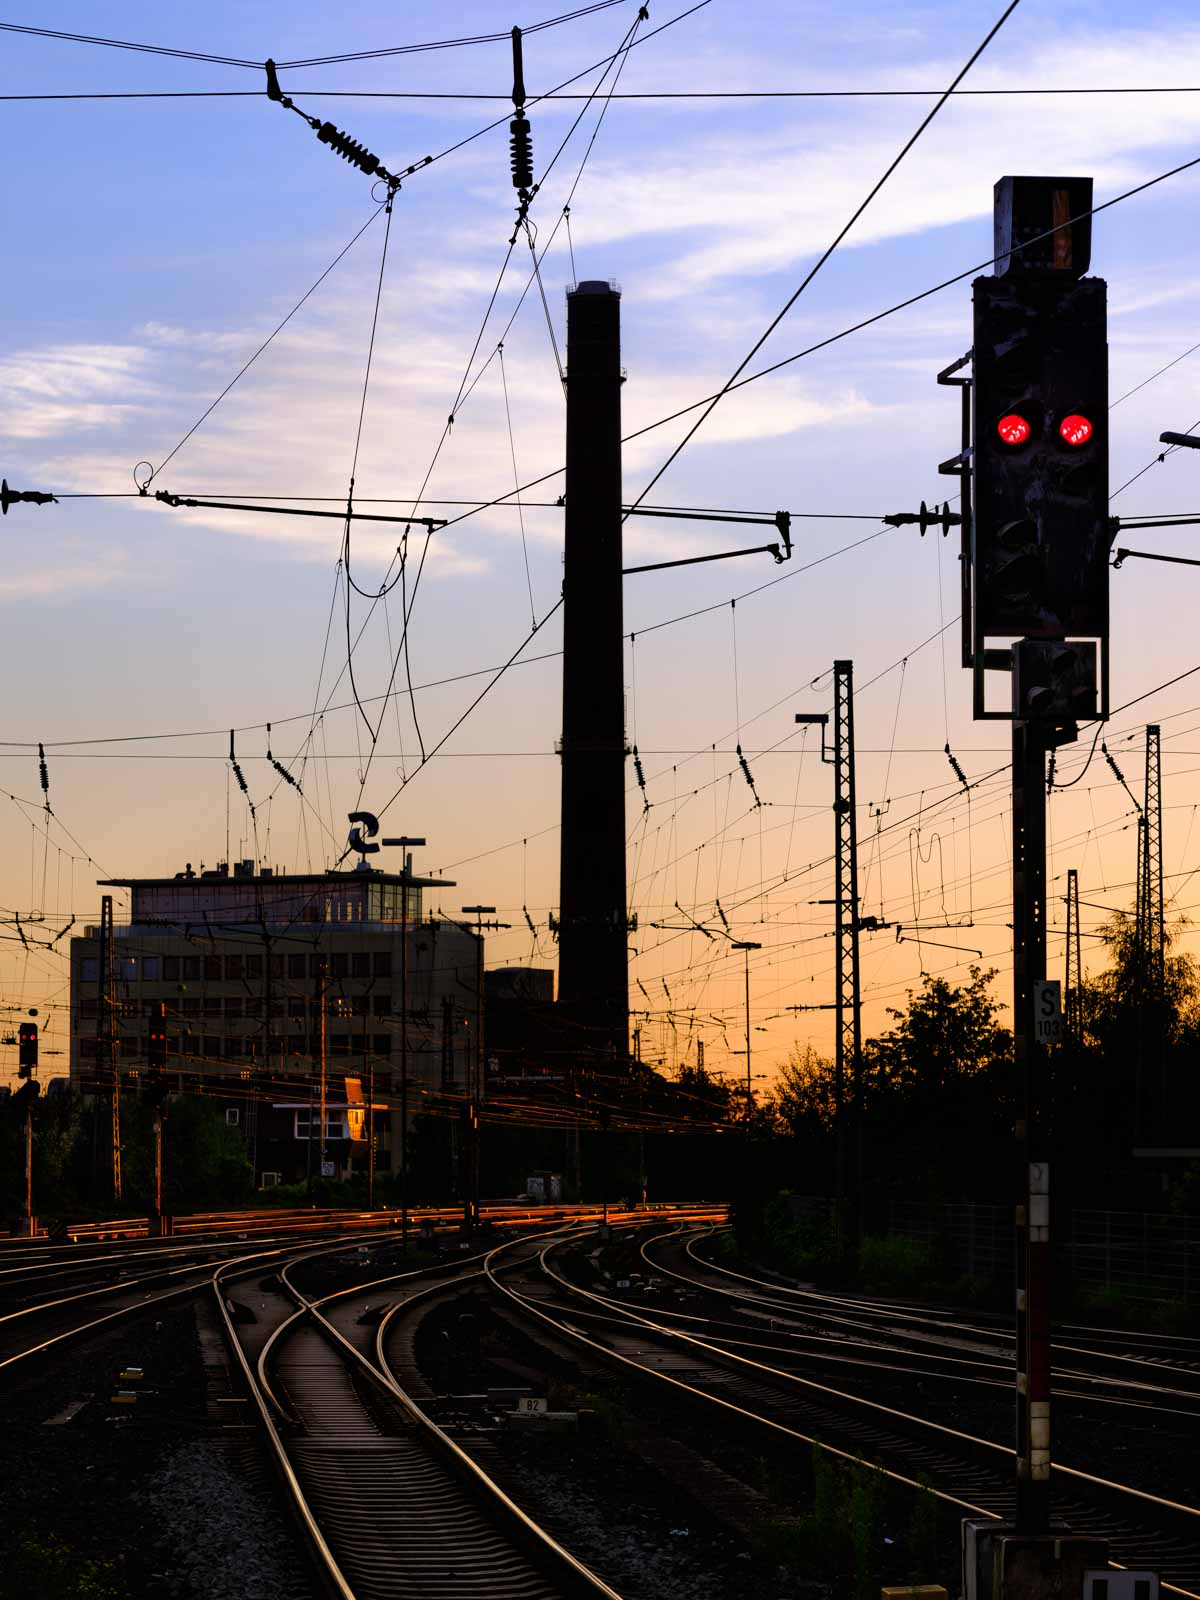 Railway romance at Bielefeld main station on 1 August 2020 in the morning at 6 am (Bielefeld, Germany).